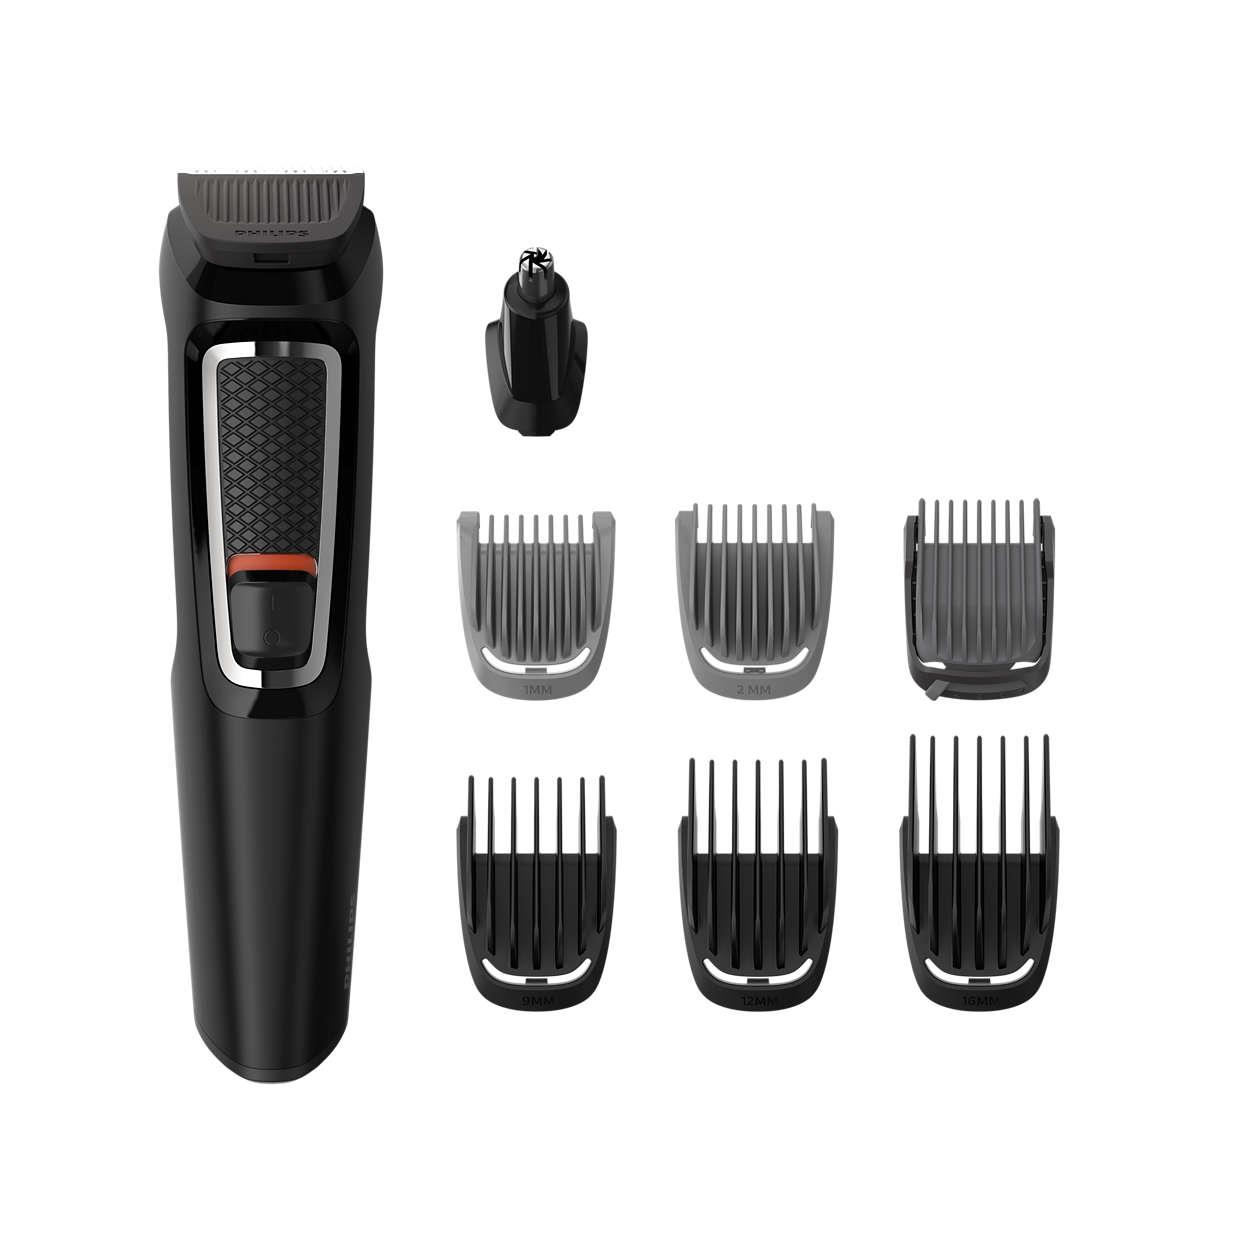 Philips Multigroom series 3000 8-in-1, Face and Hair MG3730/15 8 tools Self-sharpening steel blades Up to 60 min run time Rinseable attachments